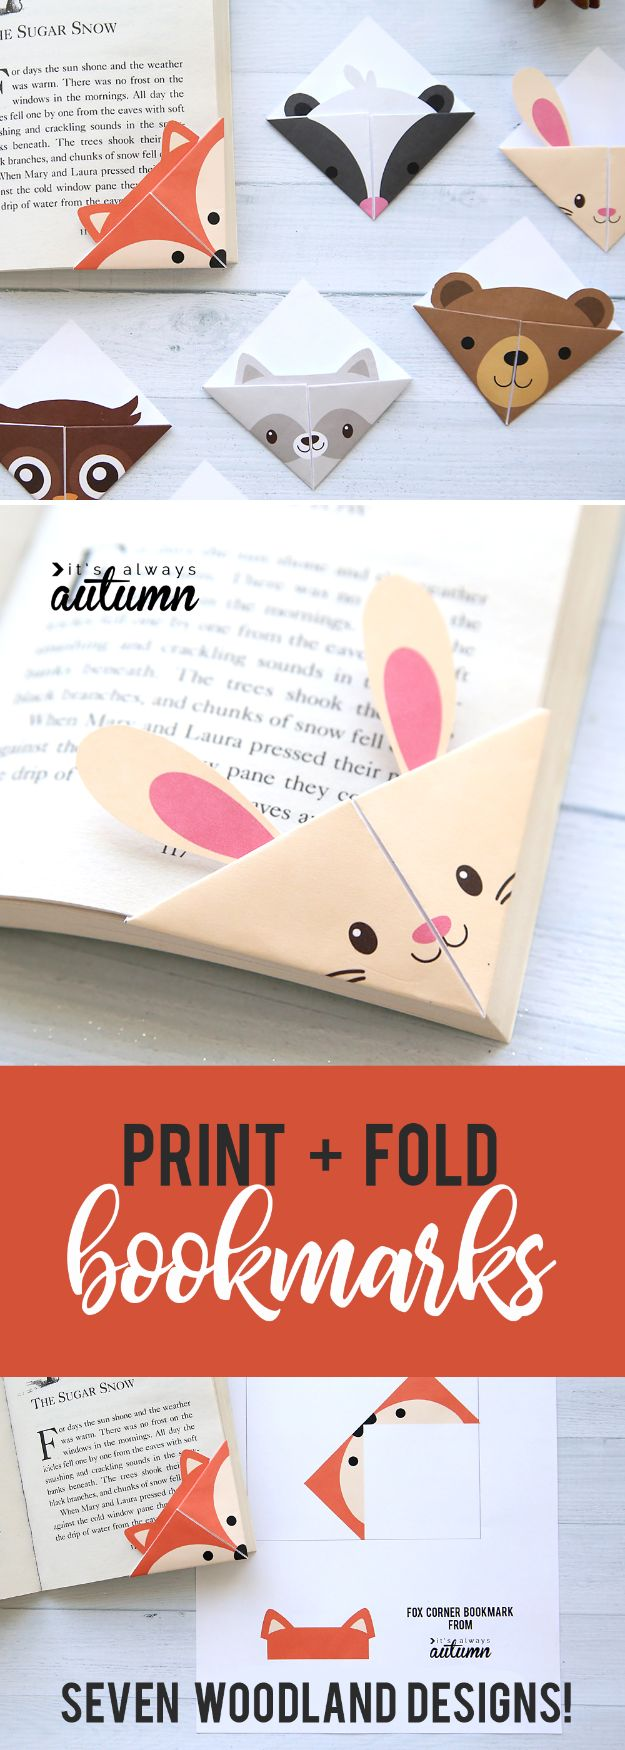 Paper Crafts DIY - DIY Woodland Animals Origami Bookmarks - Papercraft Tutorials and Easy Projects for Make for Decoration and Gift IDeas - Origami, Paper Flowers, Heart Decoration, Scrapbook Notions, Wall Art, Christmas Cards, Step by Step Tutorials for Crafts Made From Papers http://diyjoy.com/paper-crafts-diy